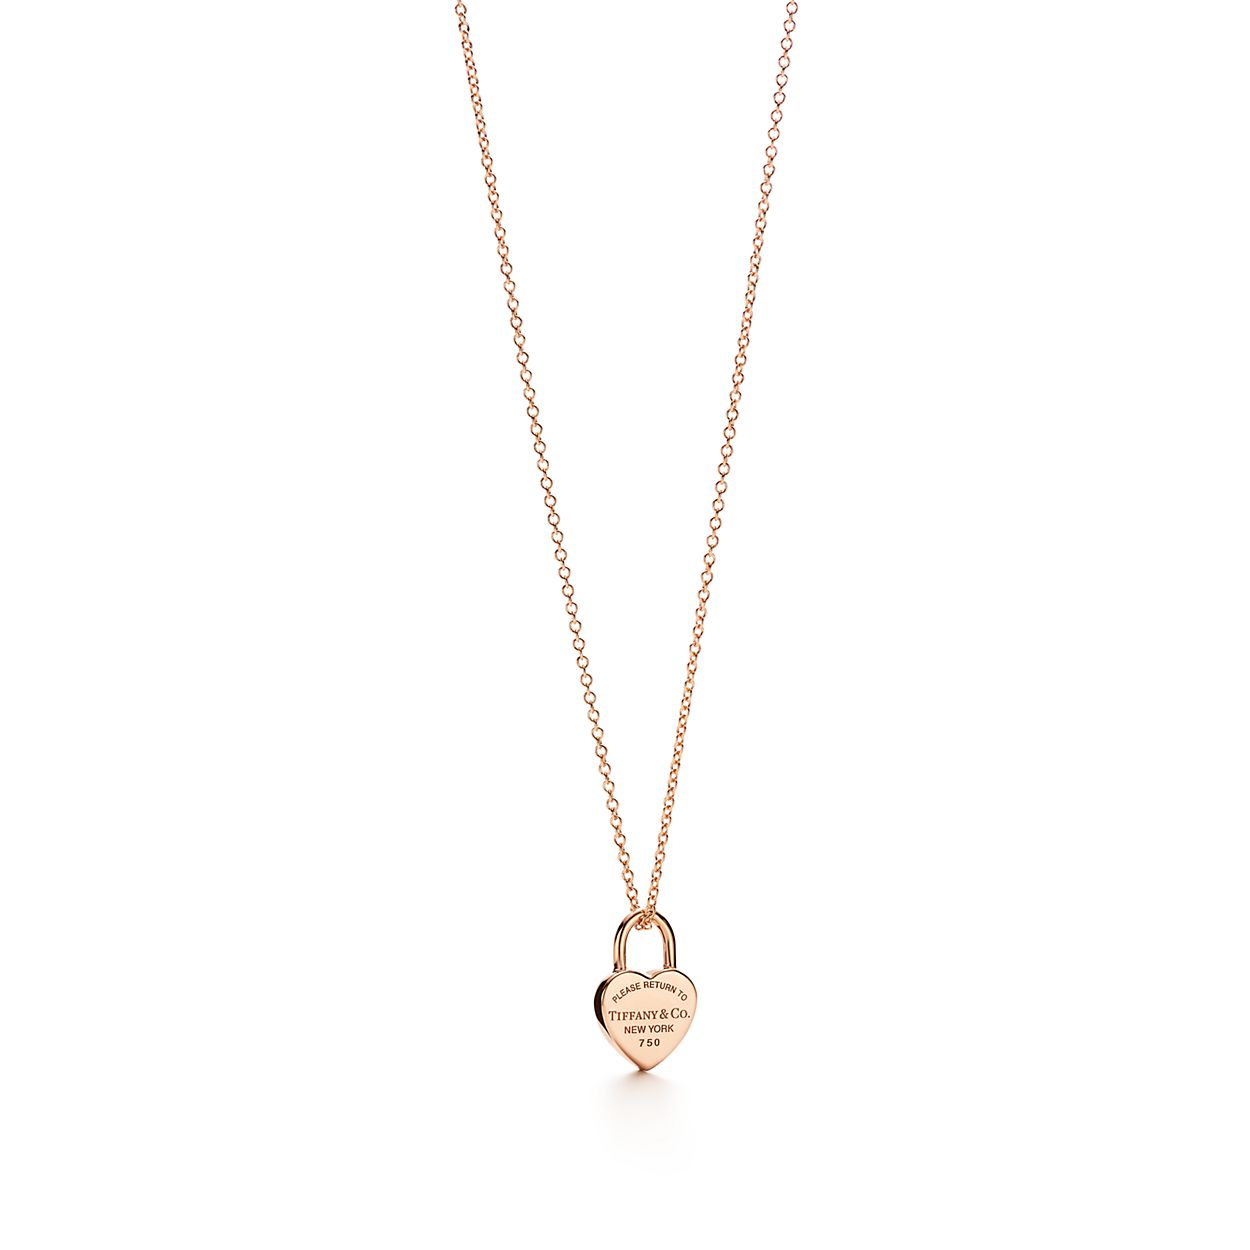 fit ur jewelry return constrain heart to pendants pendant tiffany rose necklaces hei fmt in wid id tag ed lock gold